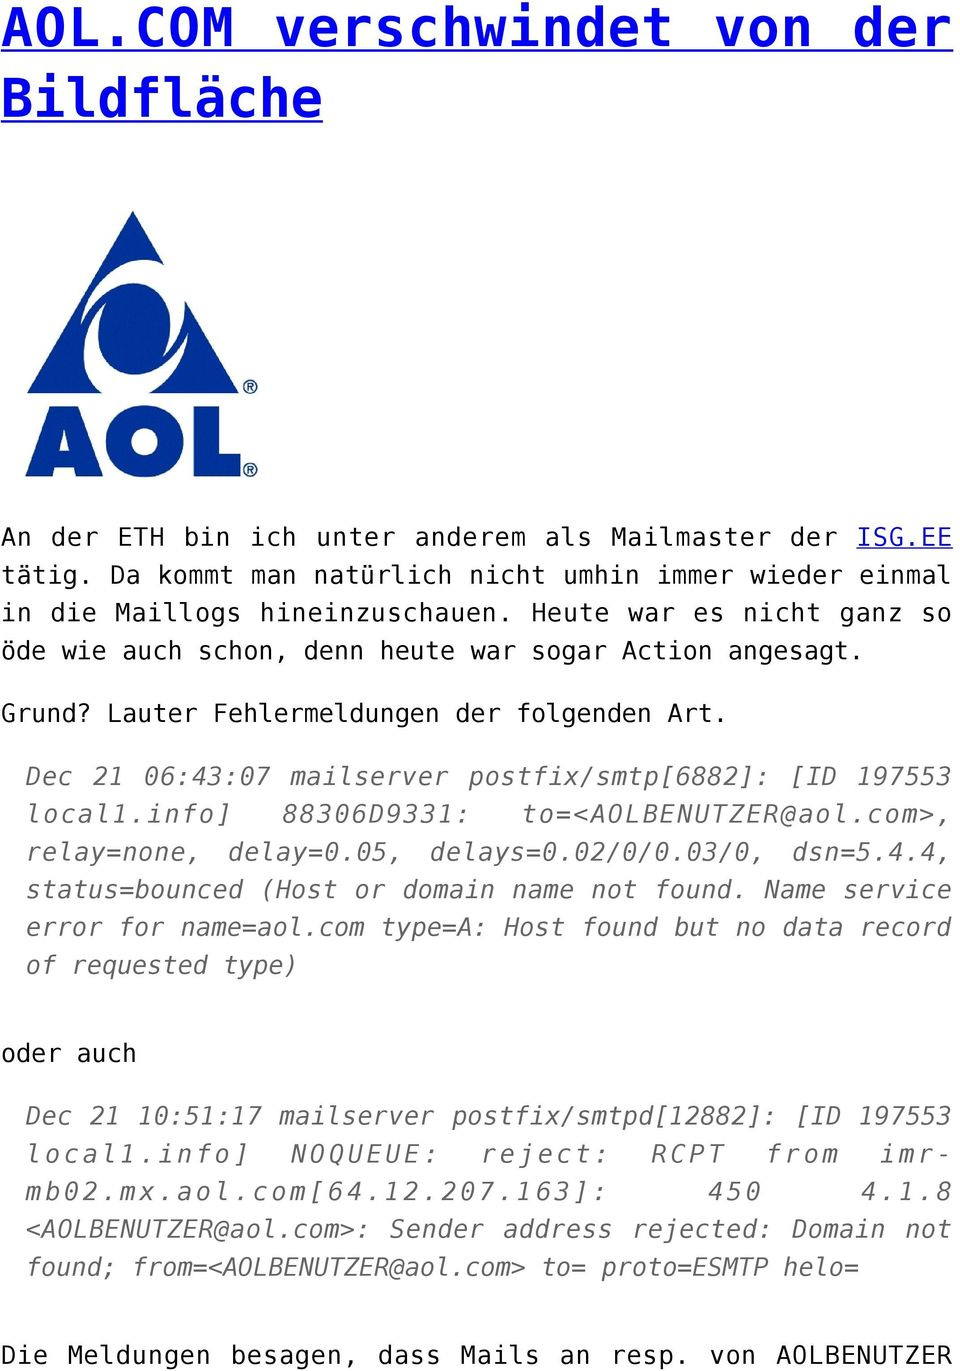 info] 88306D9331: to=<aolbenutzer@aol.com>, relay=none, delay=0.05, delays=0.02/0/0.03/0, dsn=5.4.4, status=bounced (Host or domain name not found. Name service error for name=aol.